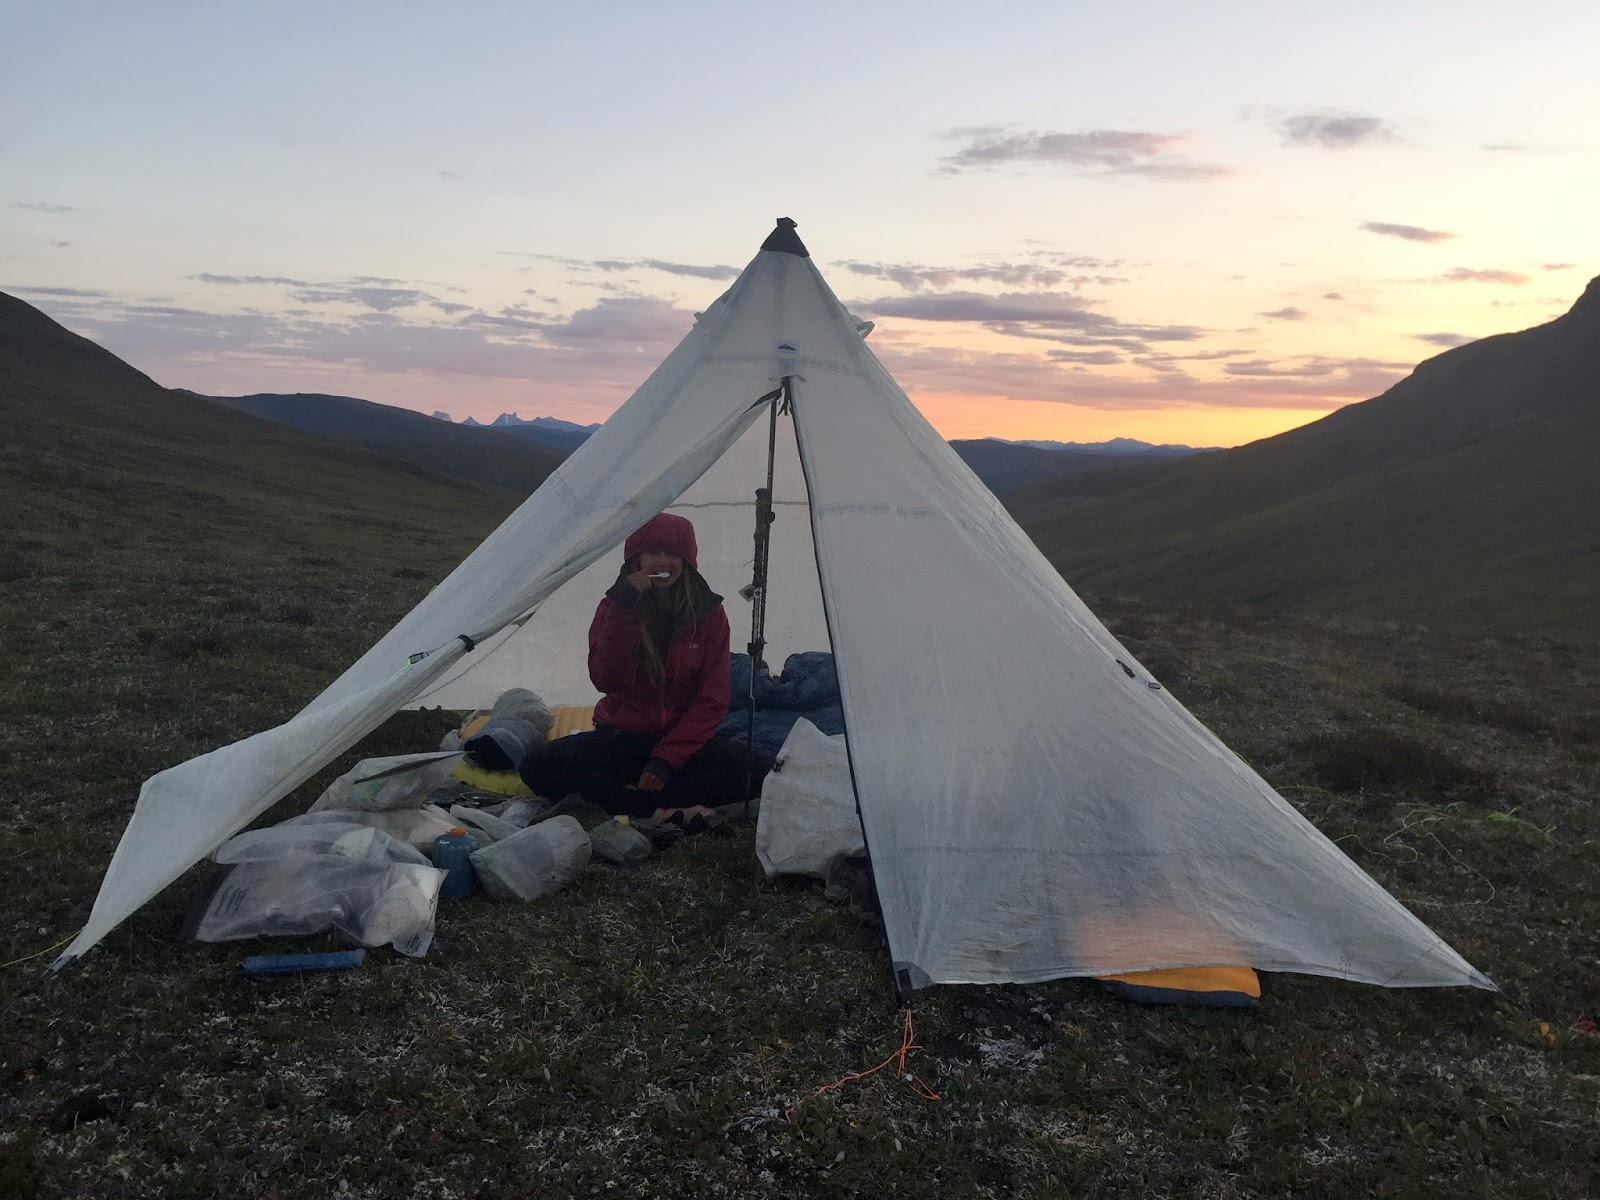 The Hyperlite Mountain Gear UltaMid 4 is the best all-purpose tent on the planet. Here Sarah Brey brushes her teeth on a beautiful night in the Brooks ... & The Best Ultralight Tent Shelter: Hyperlite Mountain Gear UltaMid ...